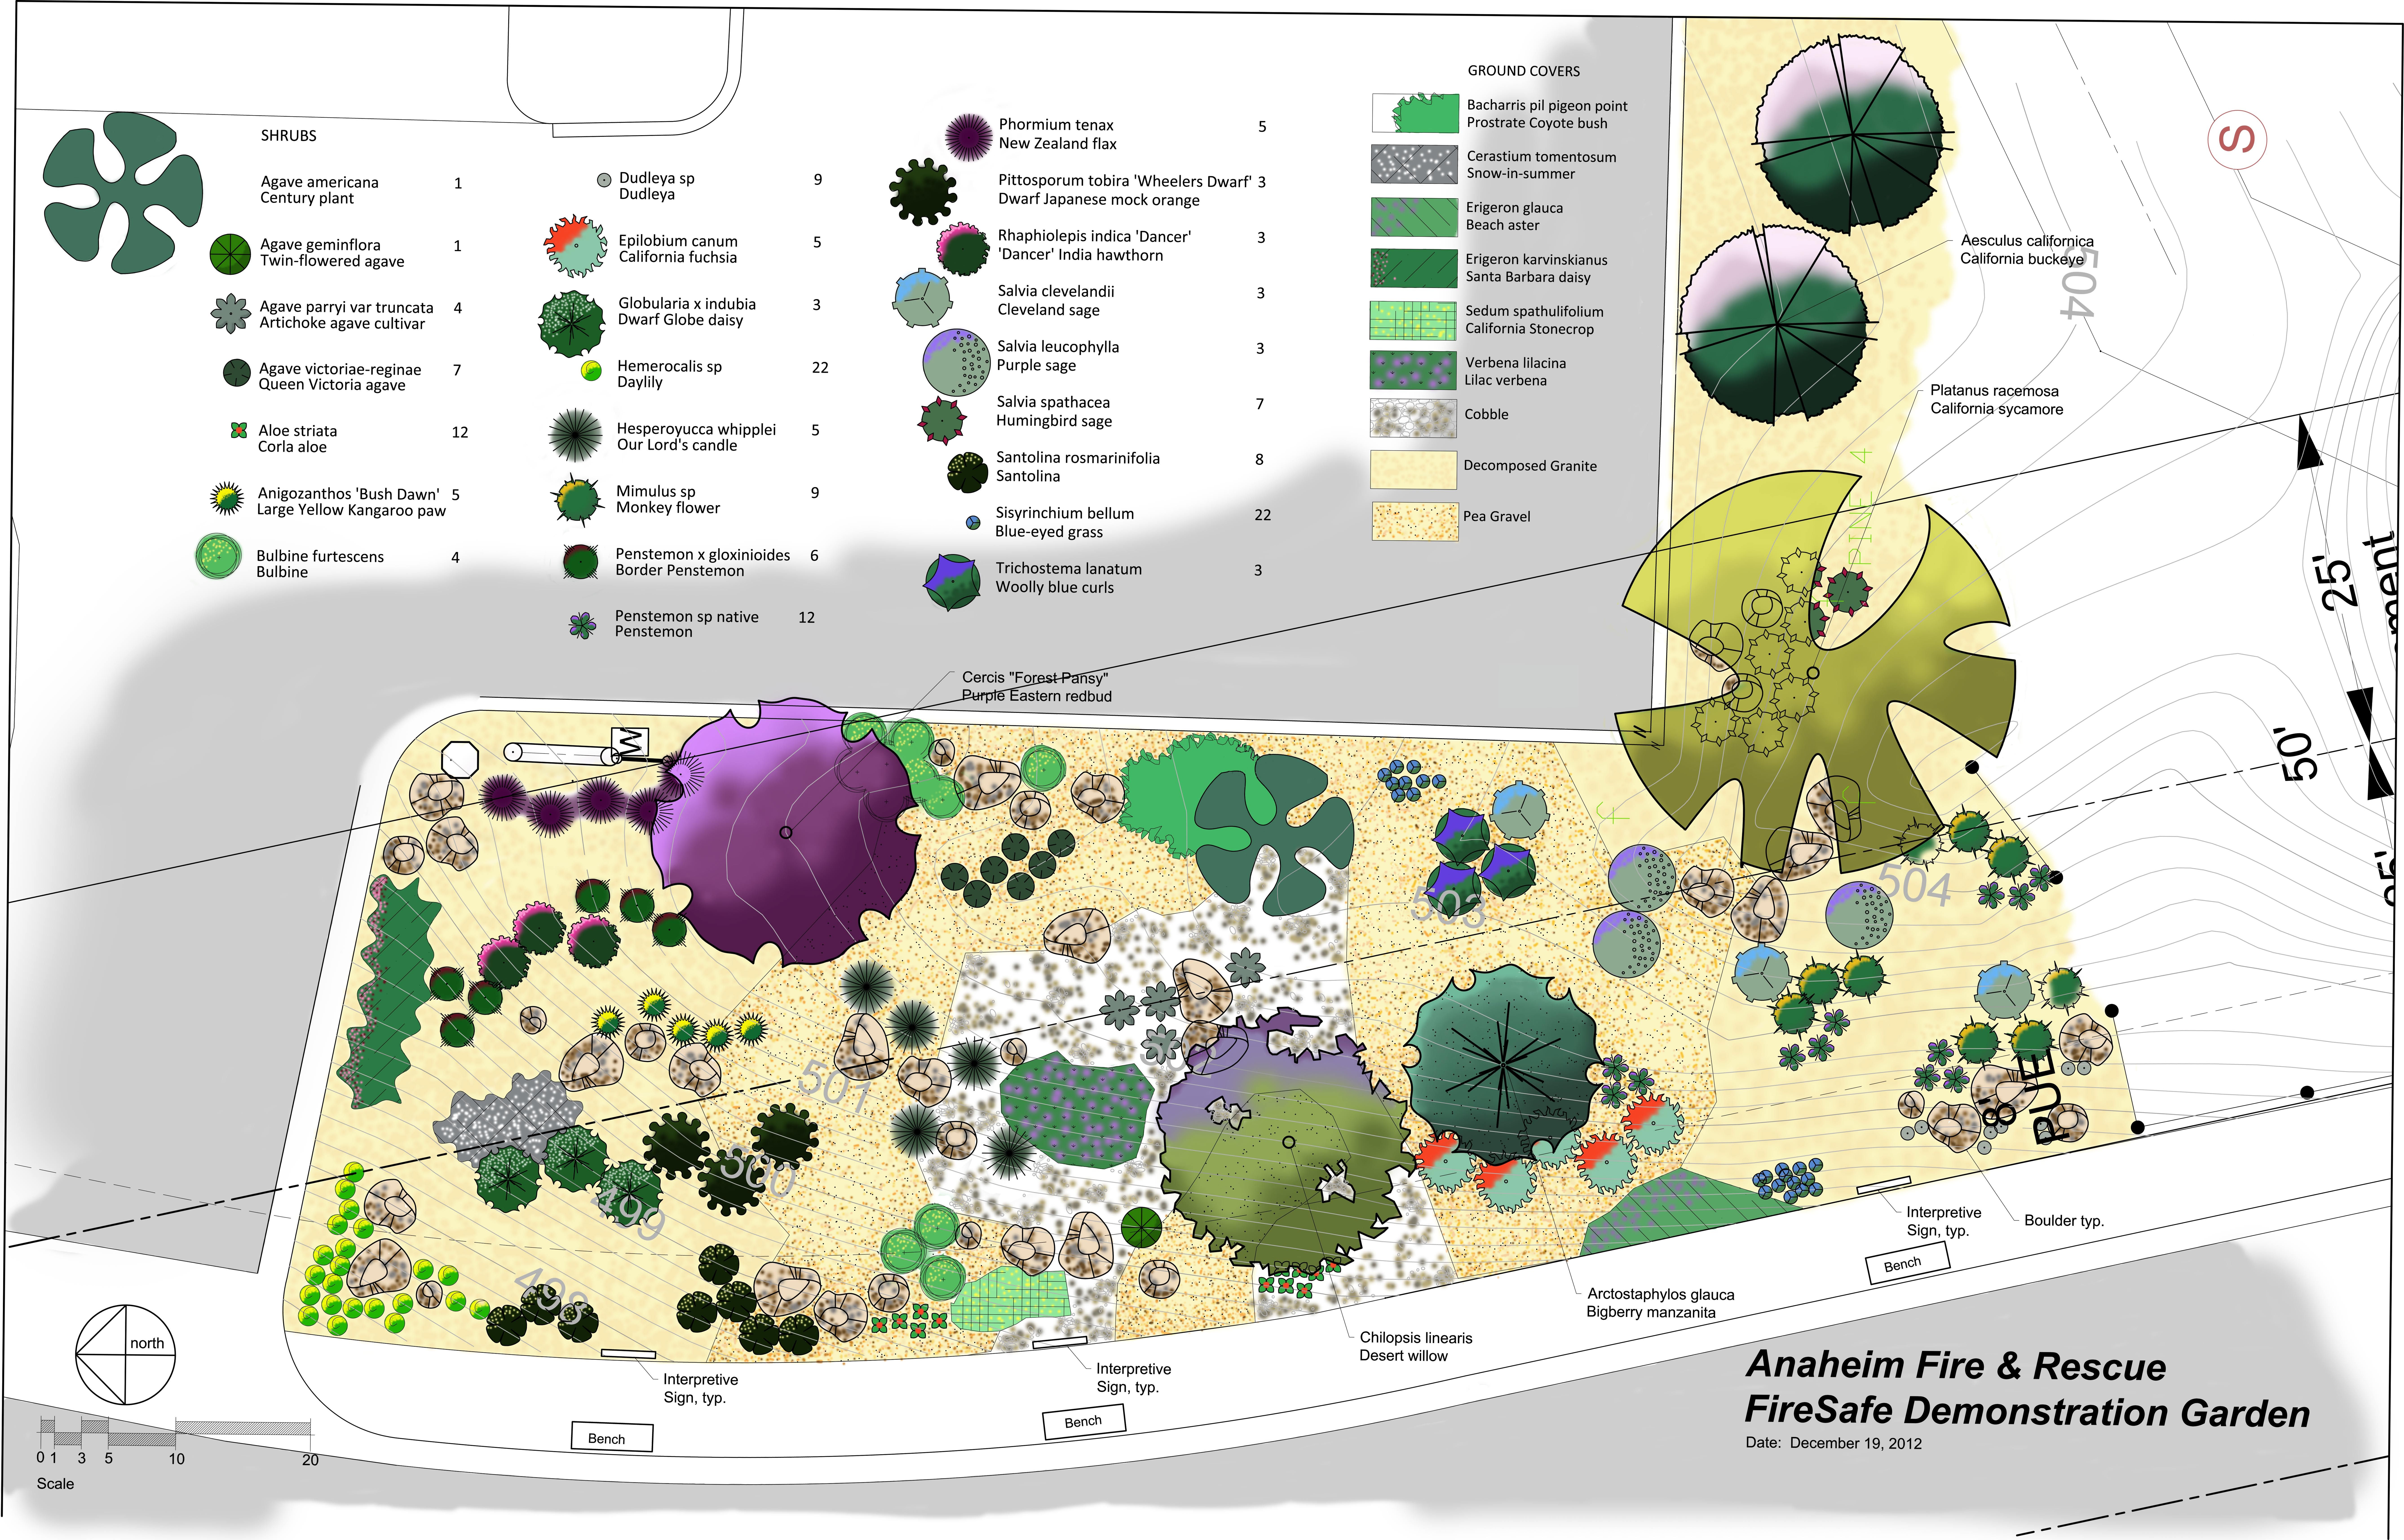 The proposed design for the Anaheim Fire & Rescue Fire Safe Garden